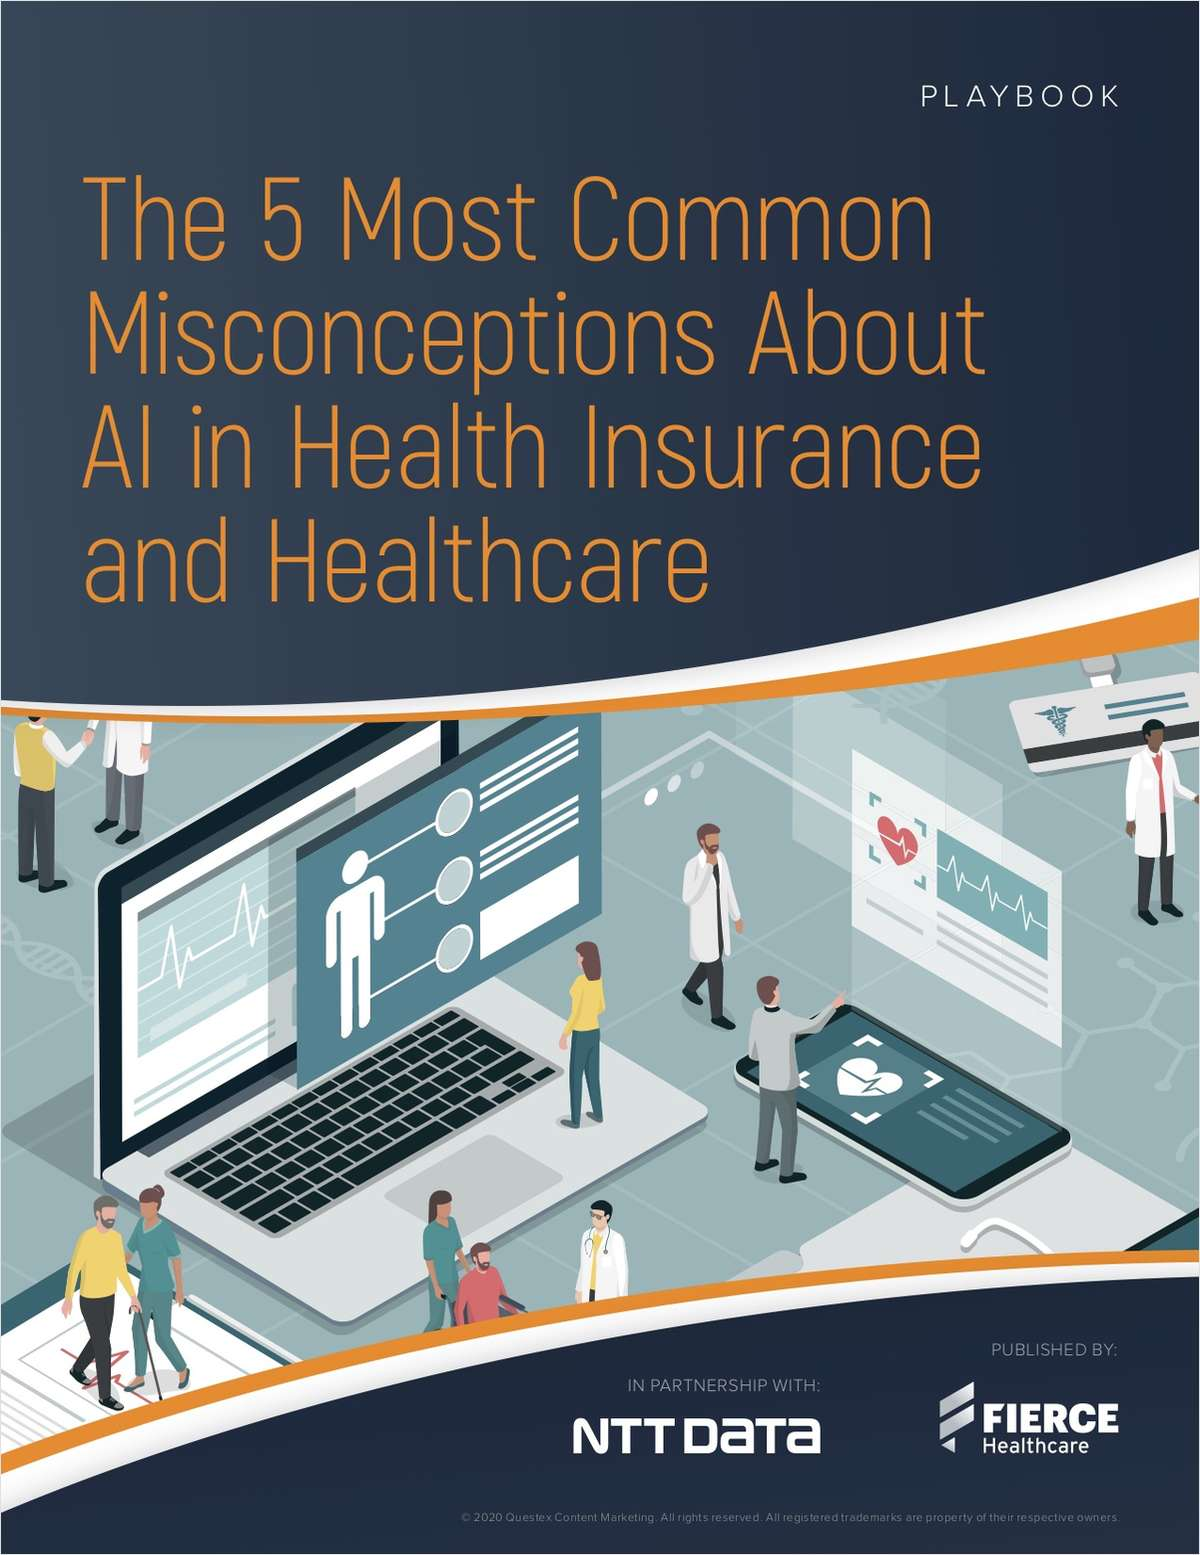 The 5 Most Common Misconceptions About AI in Health Insurance and Healthcare